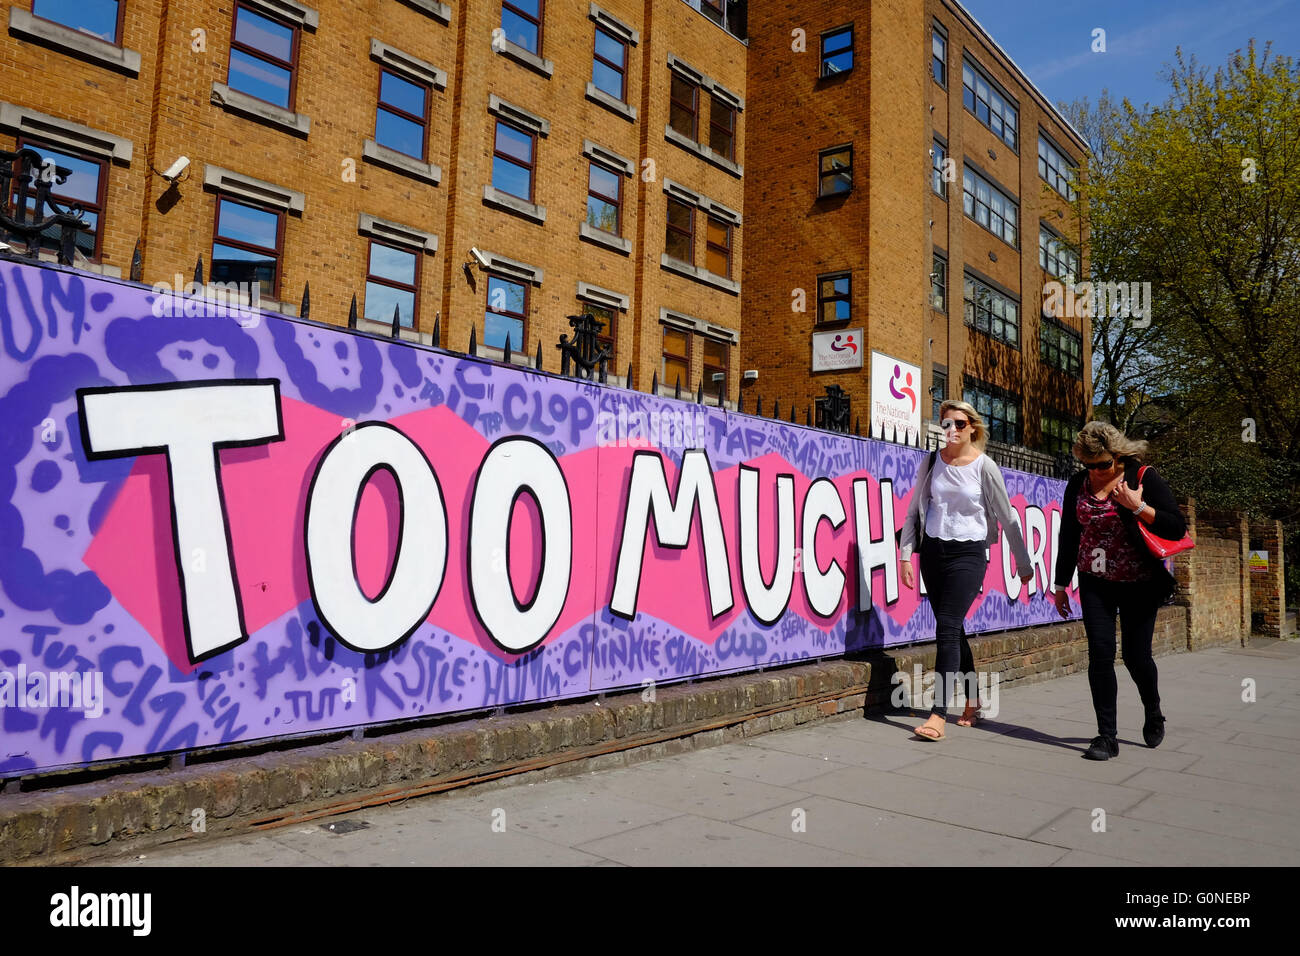 two women walking pass wall art  'TOO MUCH INFORMATION' in London - Stock Image